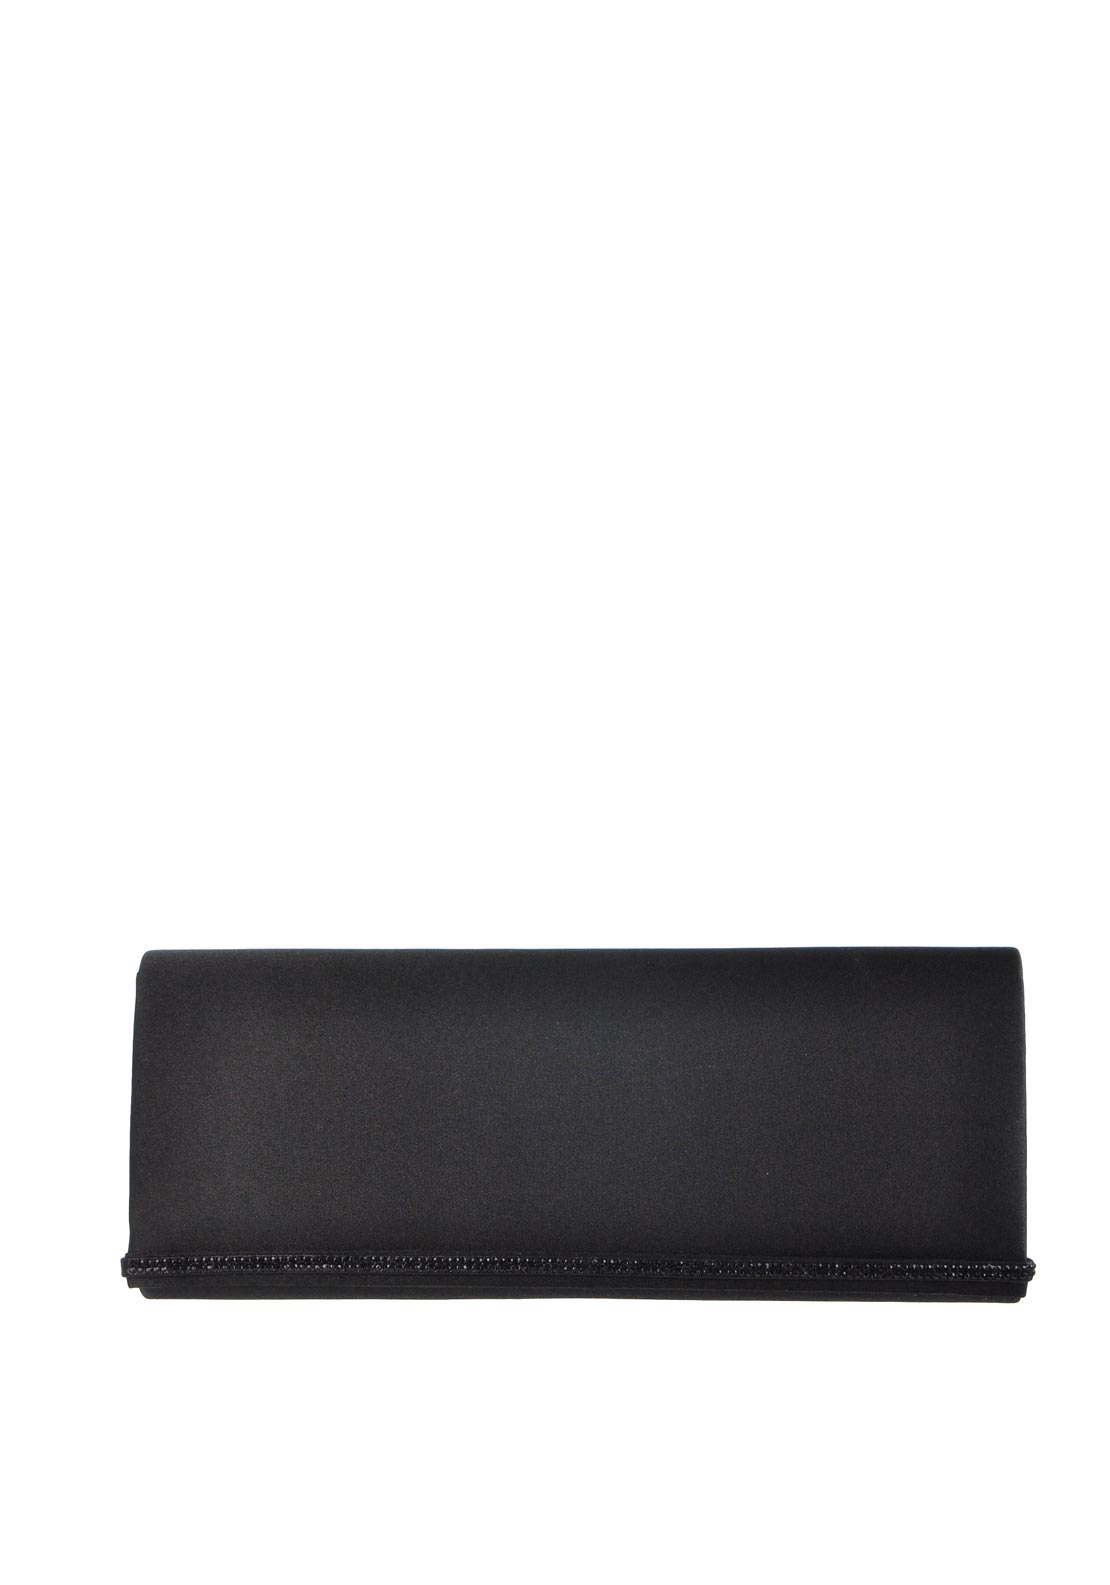 Glamour Satin Clutch Bag, Black